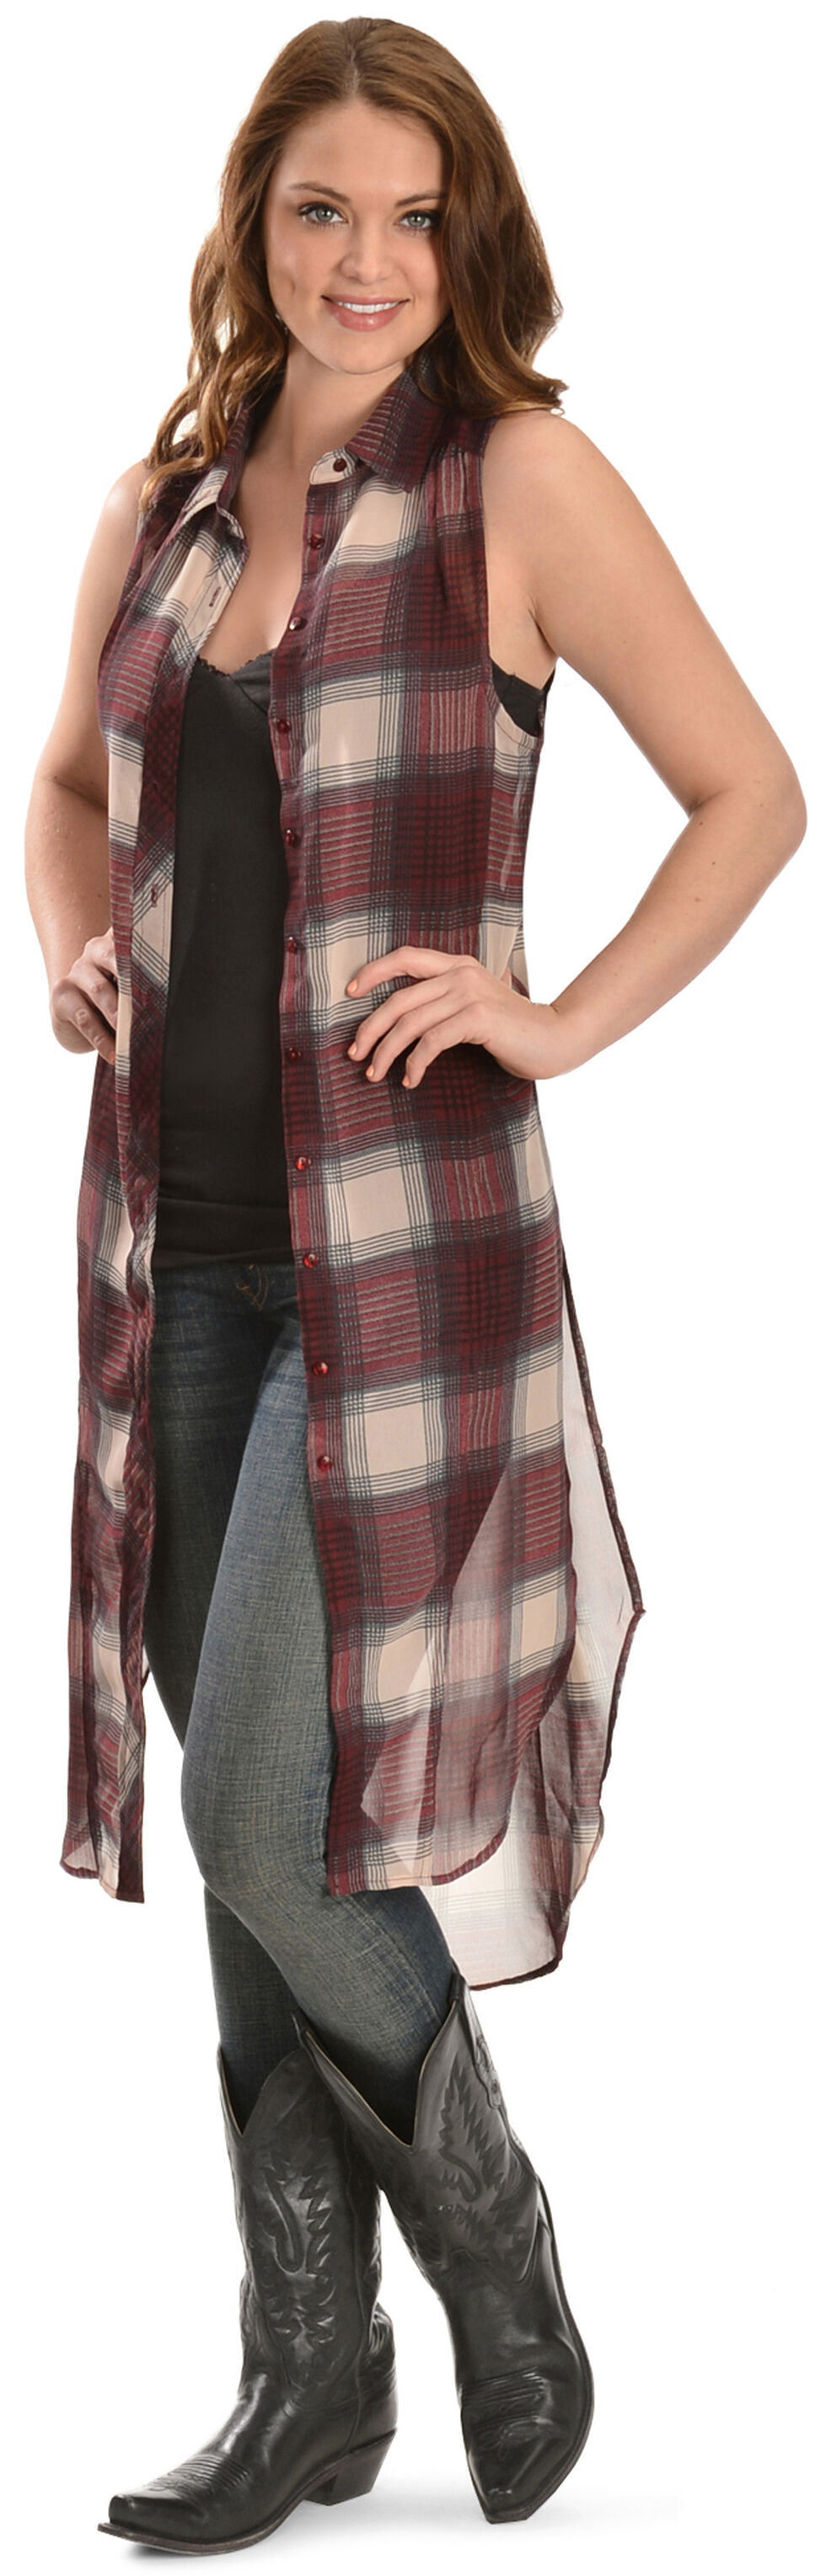 Truly 4 You Long Plaid Sleeveless Top, , hi-res